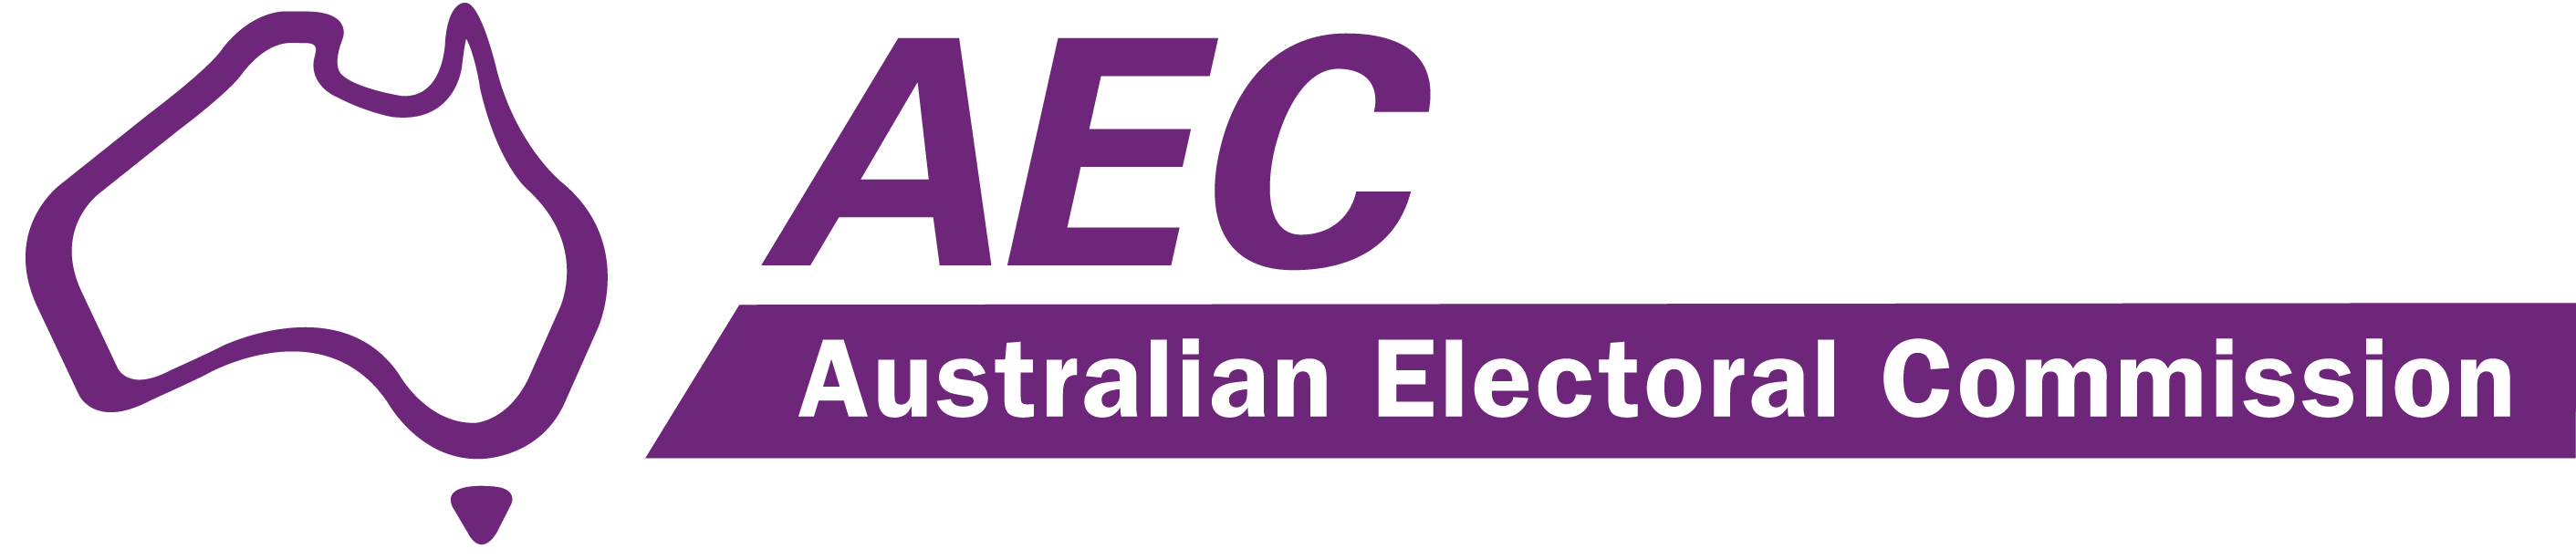 The logo for the Australian Electoral Commission